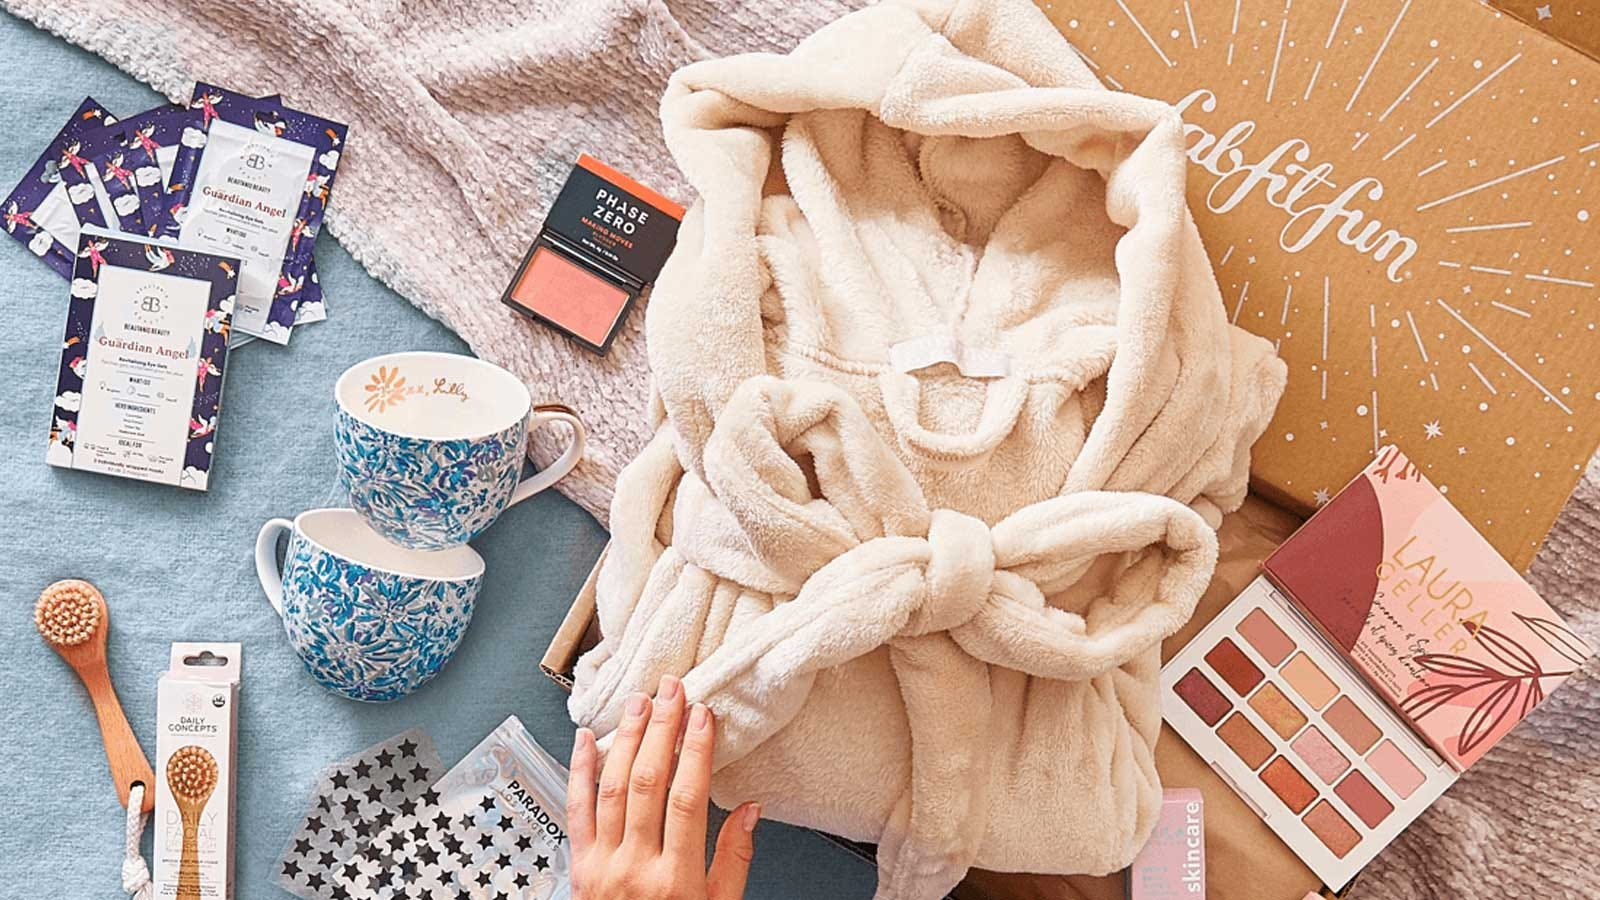 An example of the kind of fun stuff, like teacups, makeup, and bath robes, you'll find in a FabFitFun box.